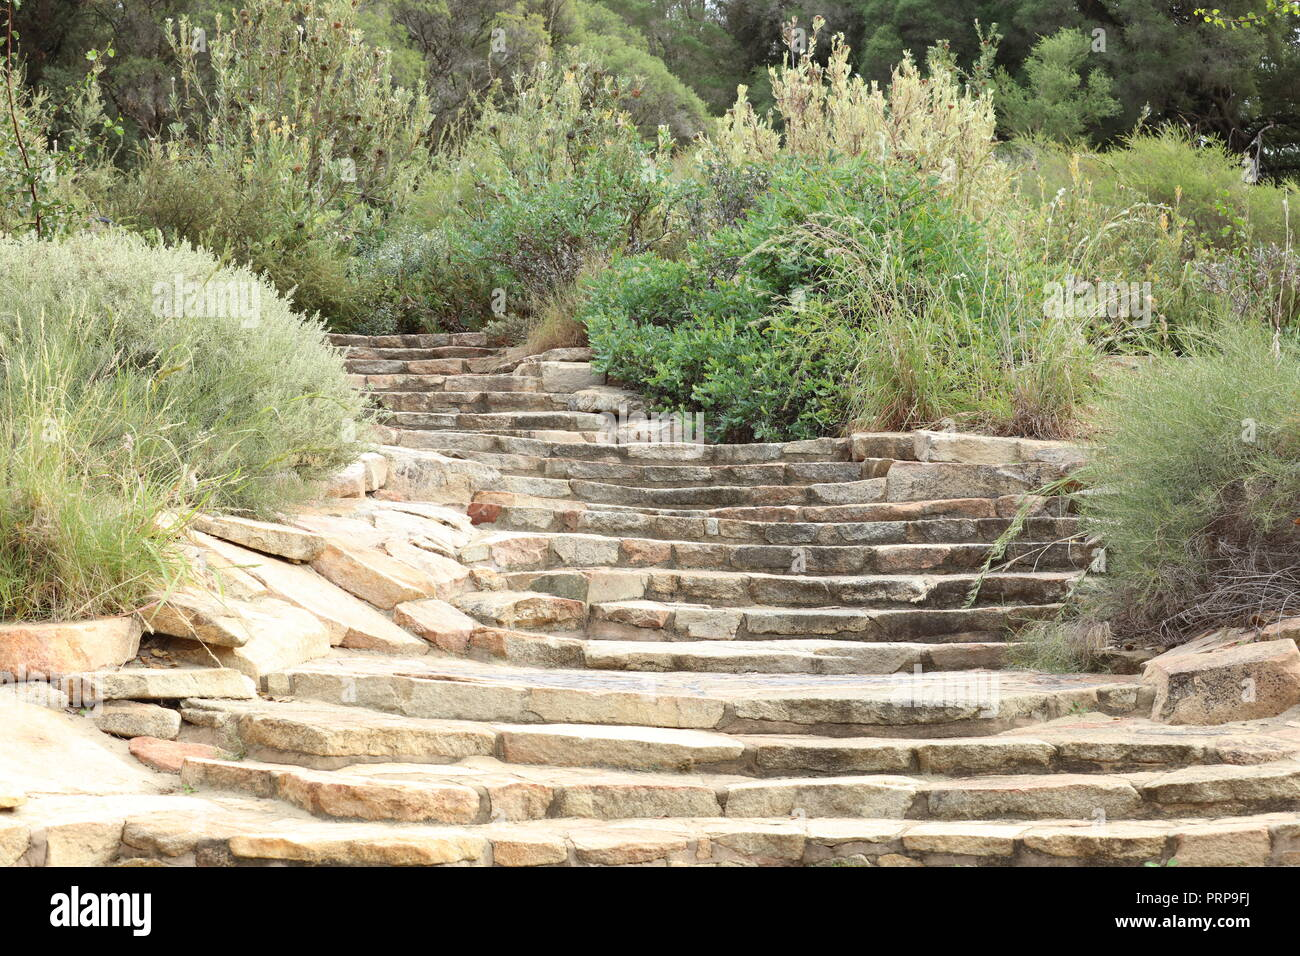 Broad cascading steps, with mosaics on the landings, leading to the Acacia garden with native acacias in the Western Australian Botanic Garden, Perth. - Stock Image